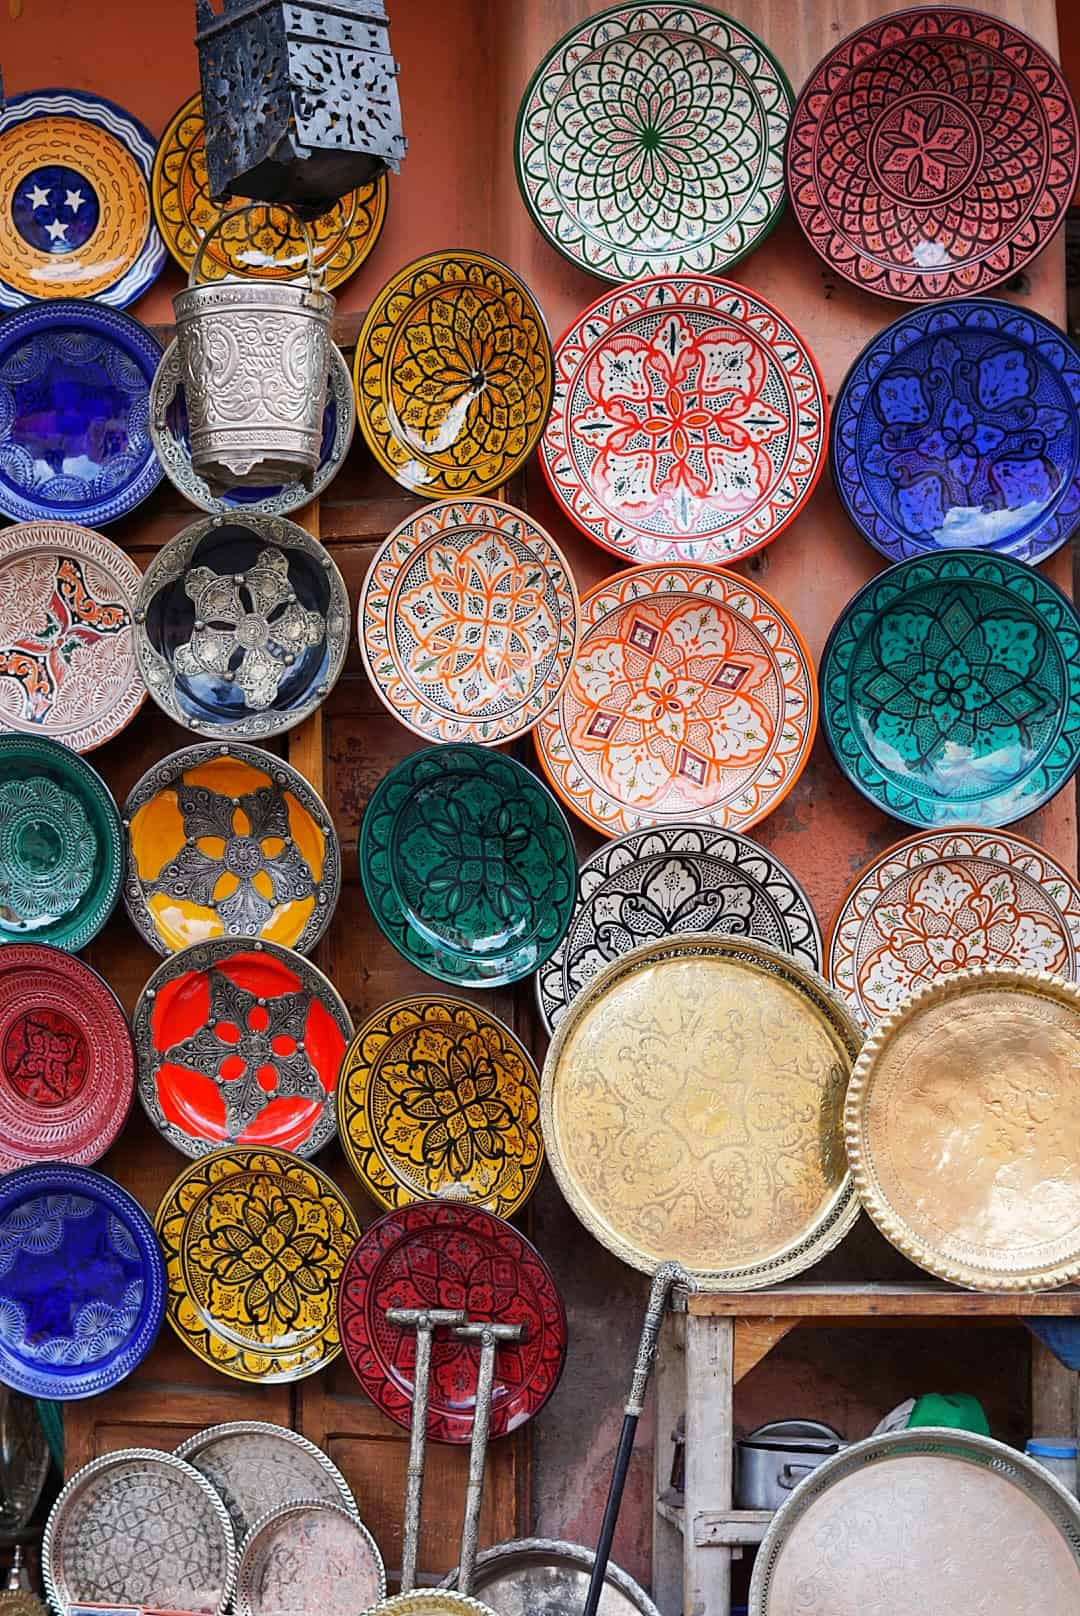 Plates in Marrakech, Morocco - Lexi's Clean Kitchen